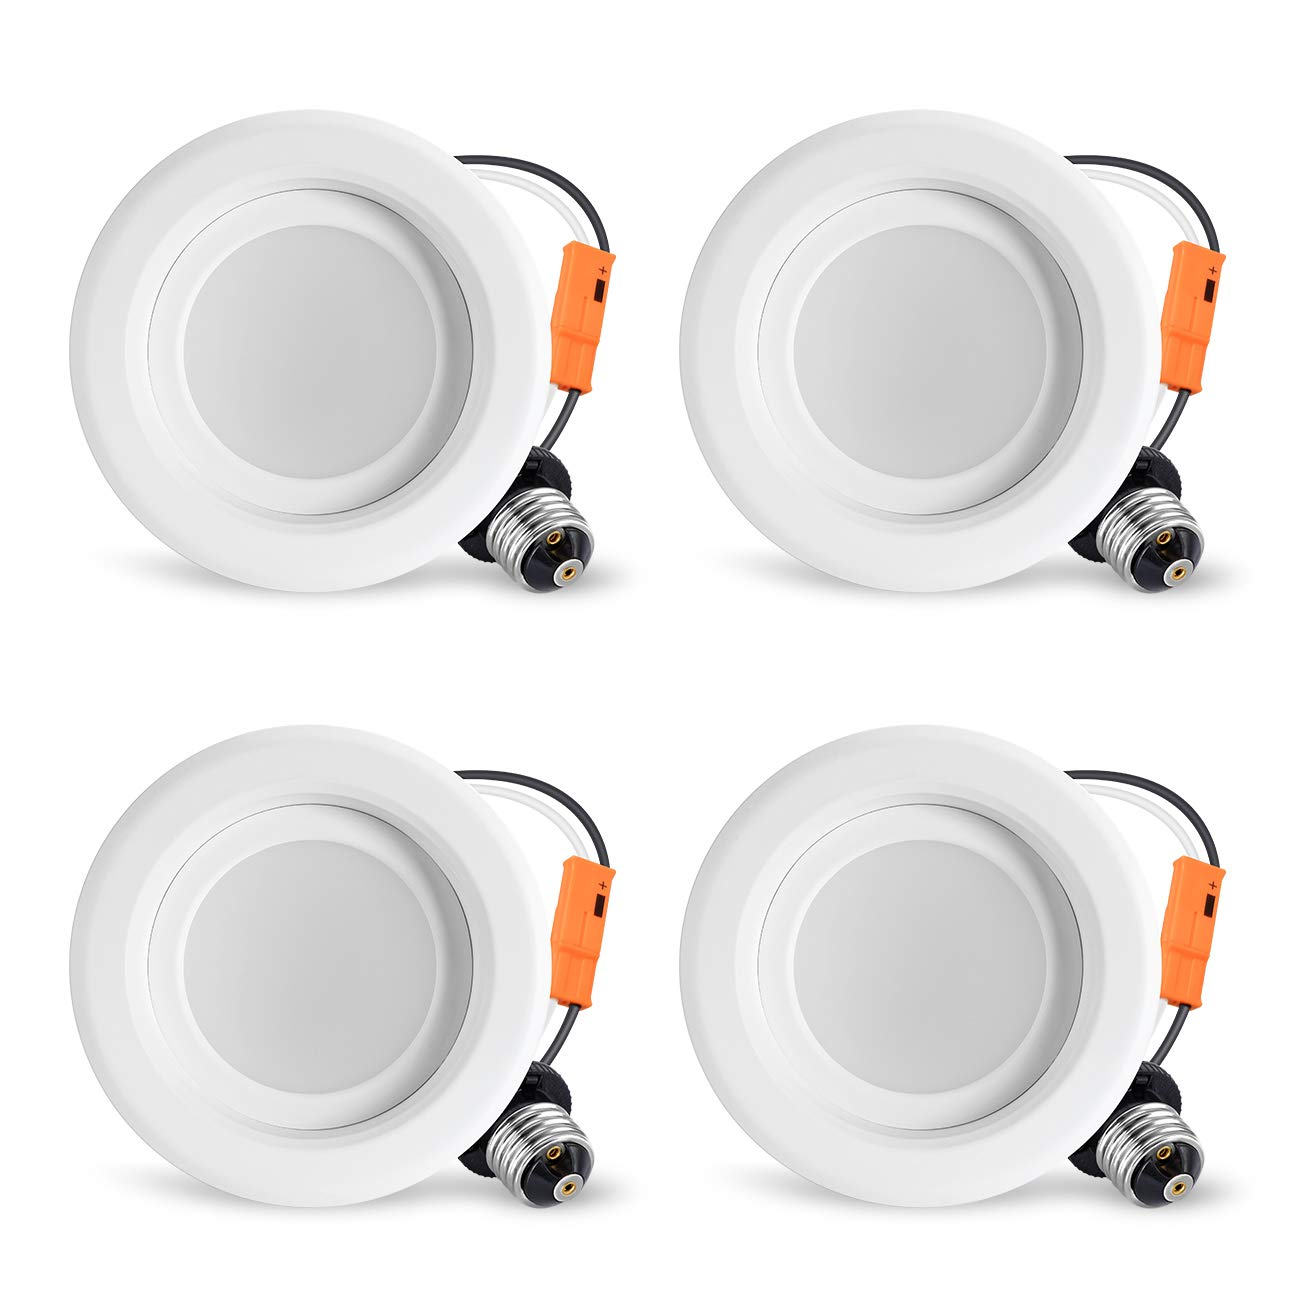 LVWIT LED 4'' Retrofit Dimmable Downlight 5000K Daylight 750 Lumens, Equivalent 65W, 5 Year Warranty(4-Pack)